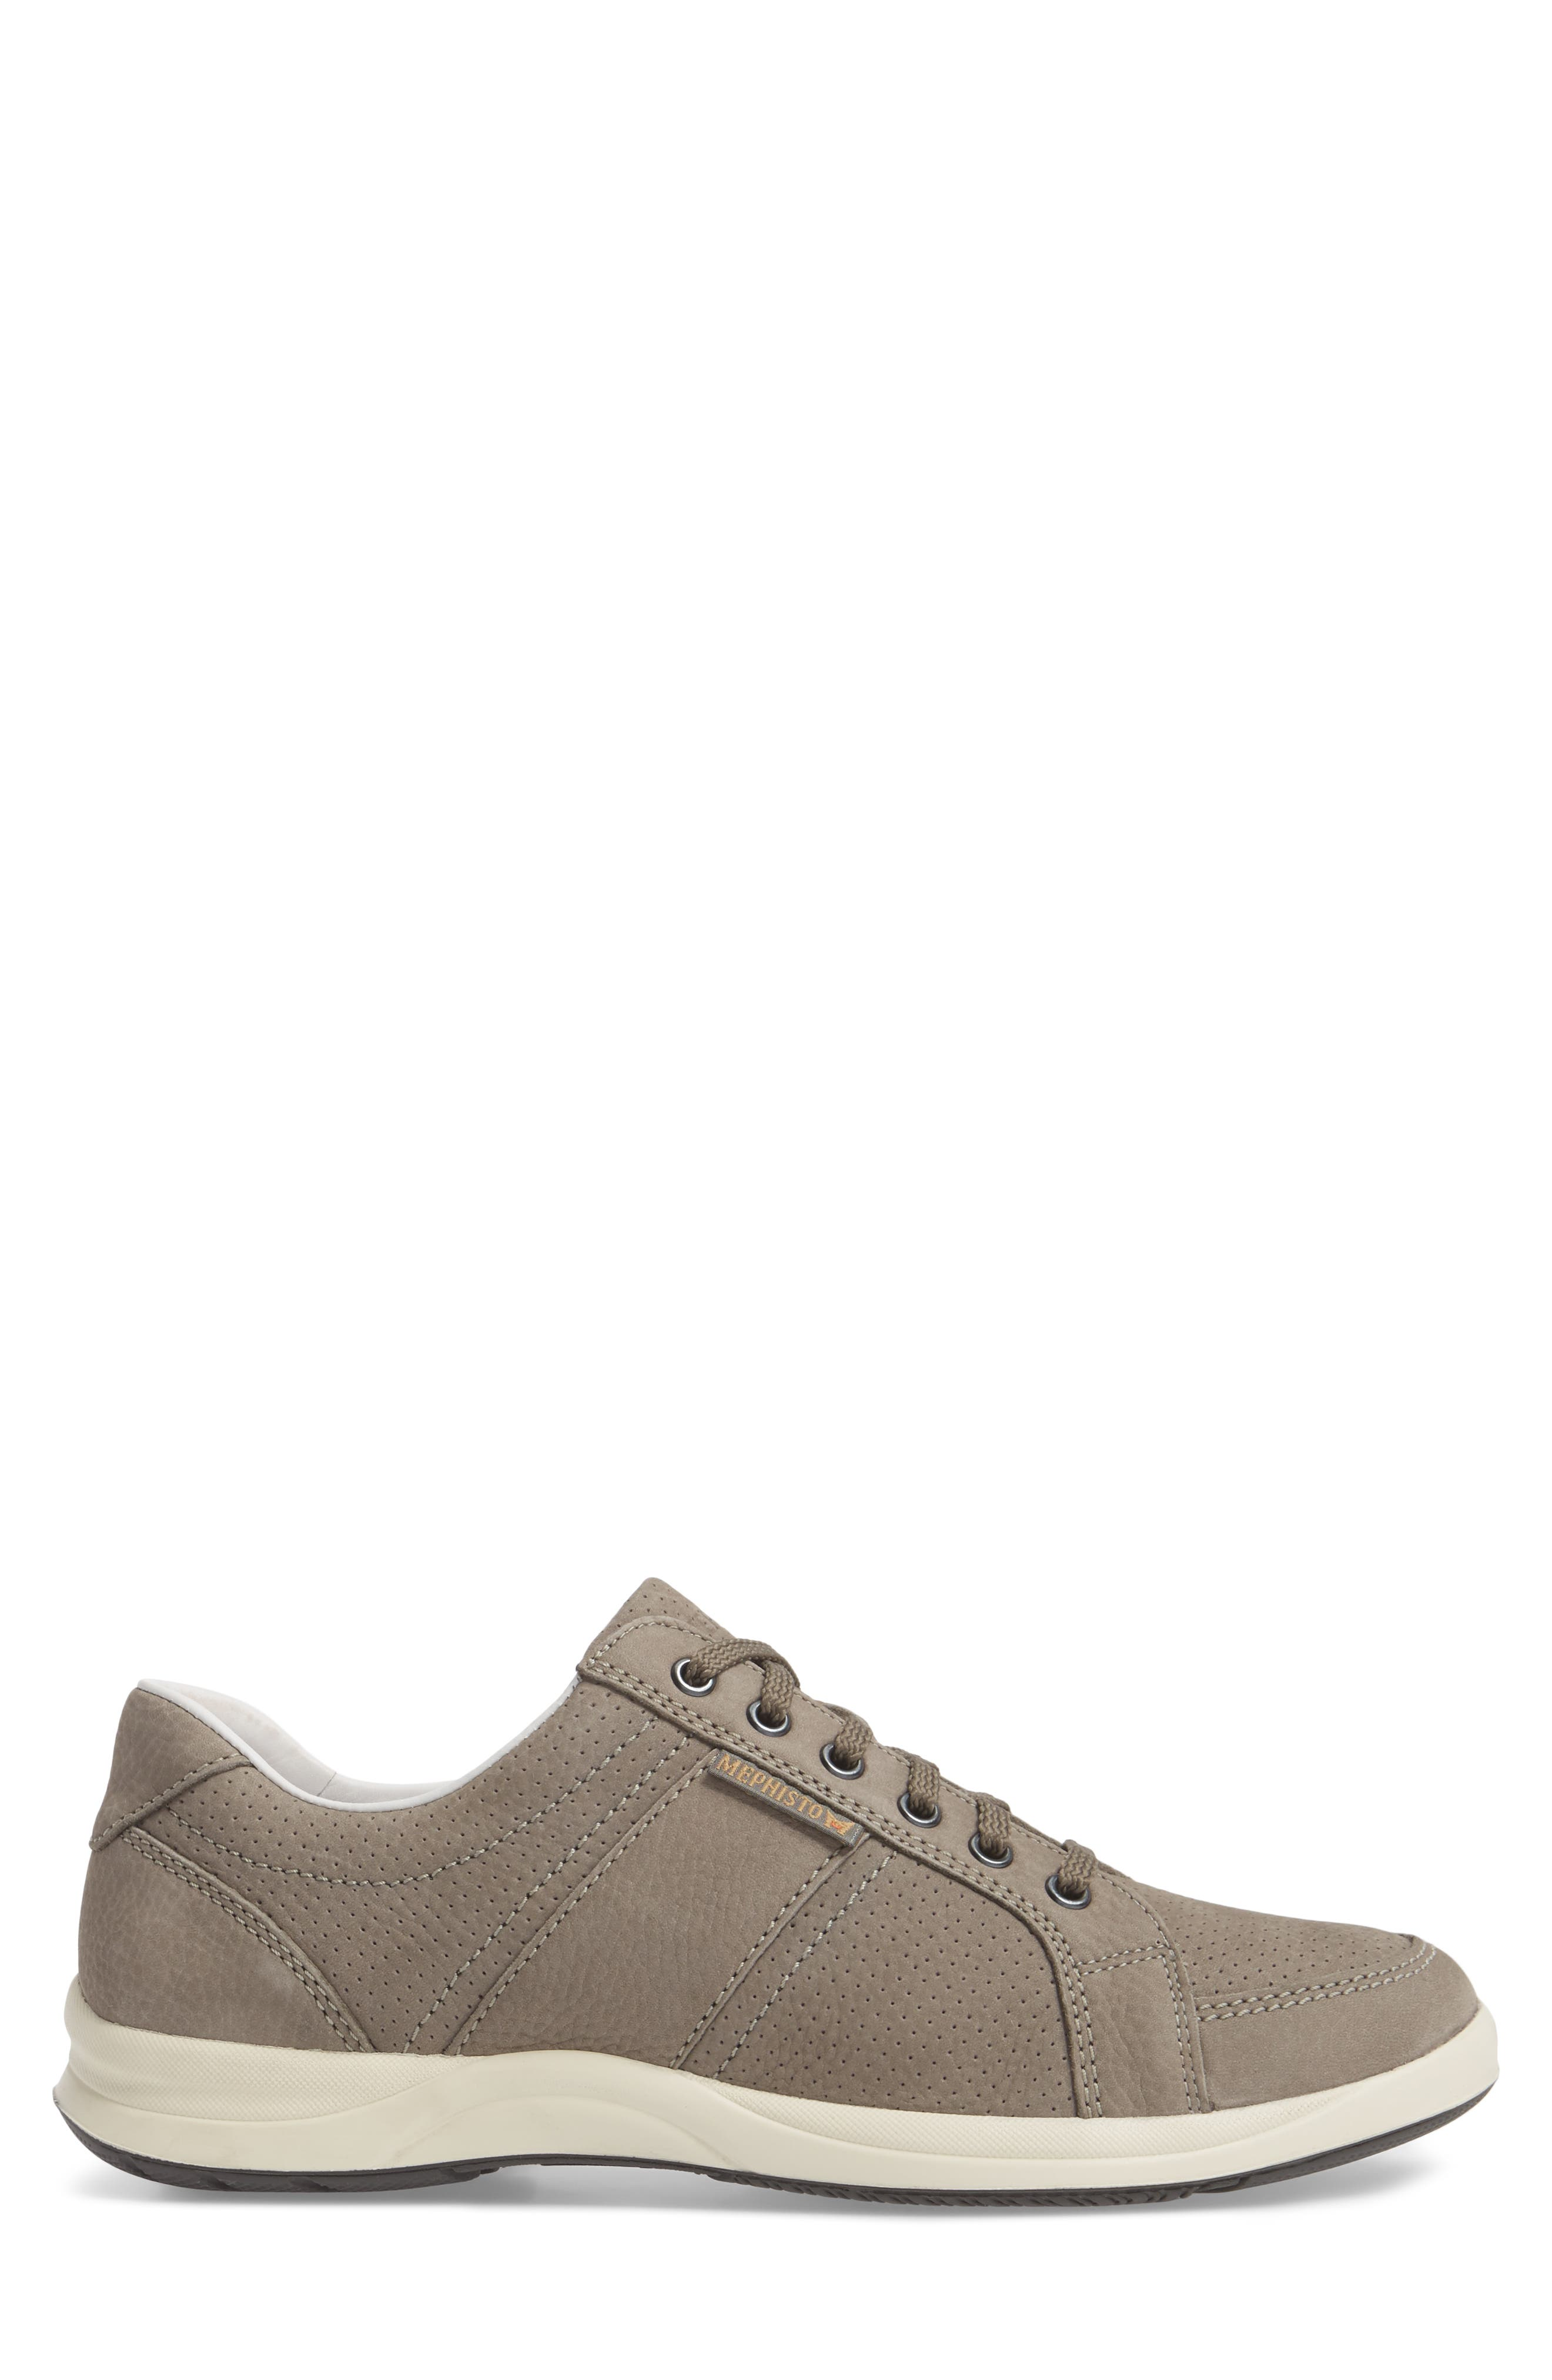 MEPHISTO, 'Hero' Perforated Sneaker, Alternate thumbnail 3, color, GREY LEATHER